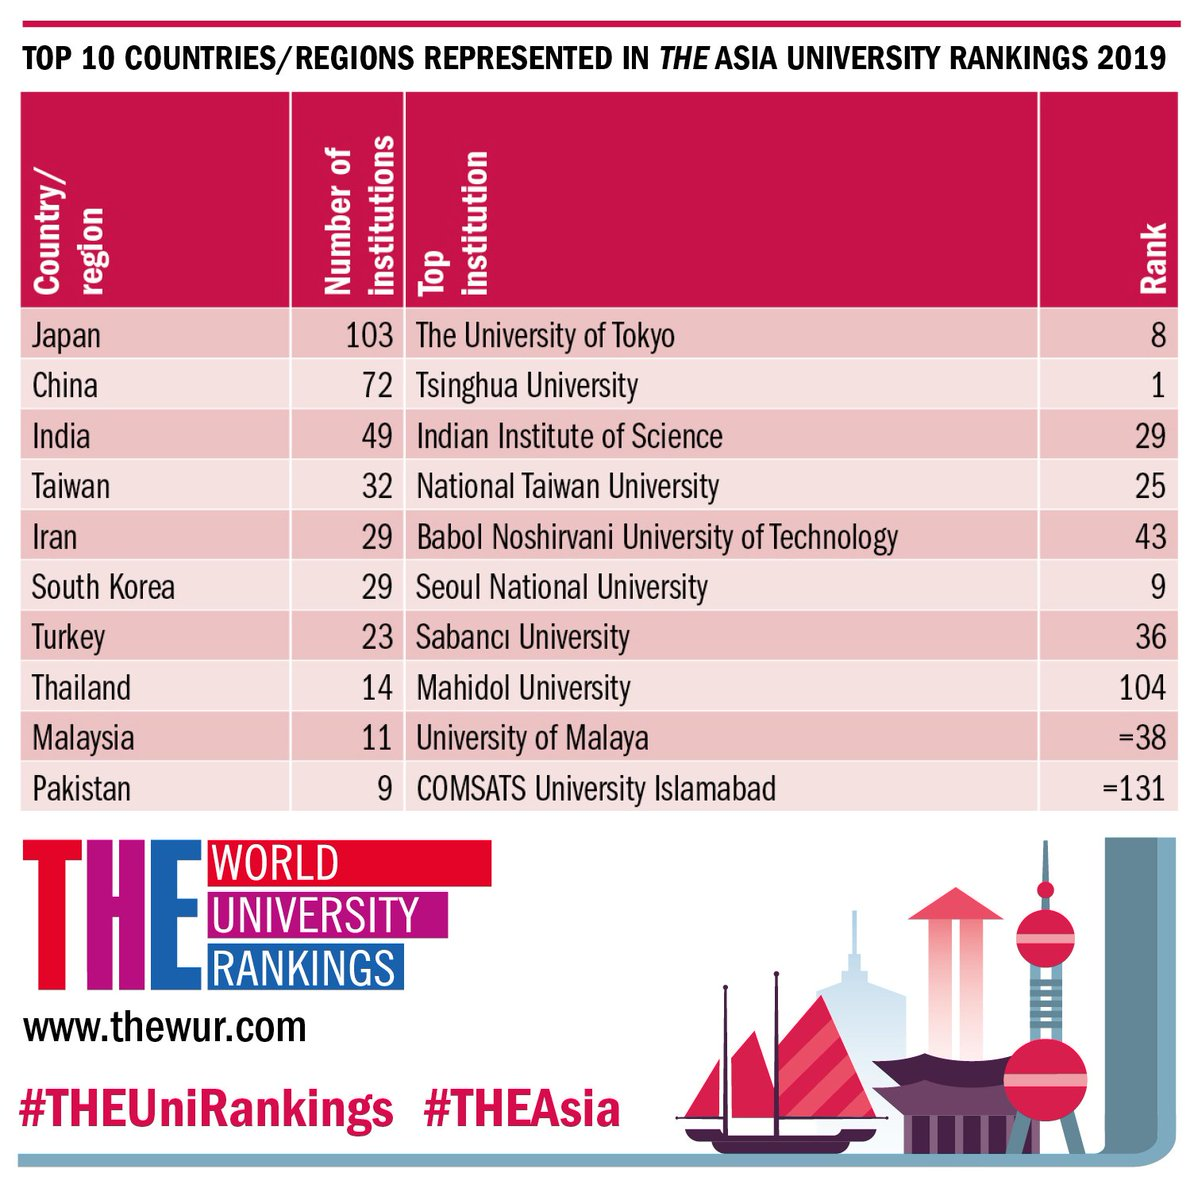 World Uni Rankings On Twitter National Flagship Universities In Indonesia Malaysia And The Philippines Have All Risen In Our Theasia Rankings Https T Co Kcjvmtnivp Theunirankings Https T Co Vyd0096nh9